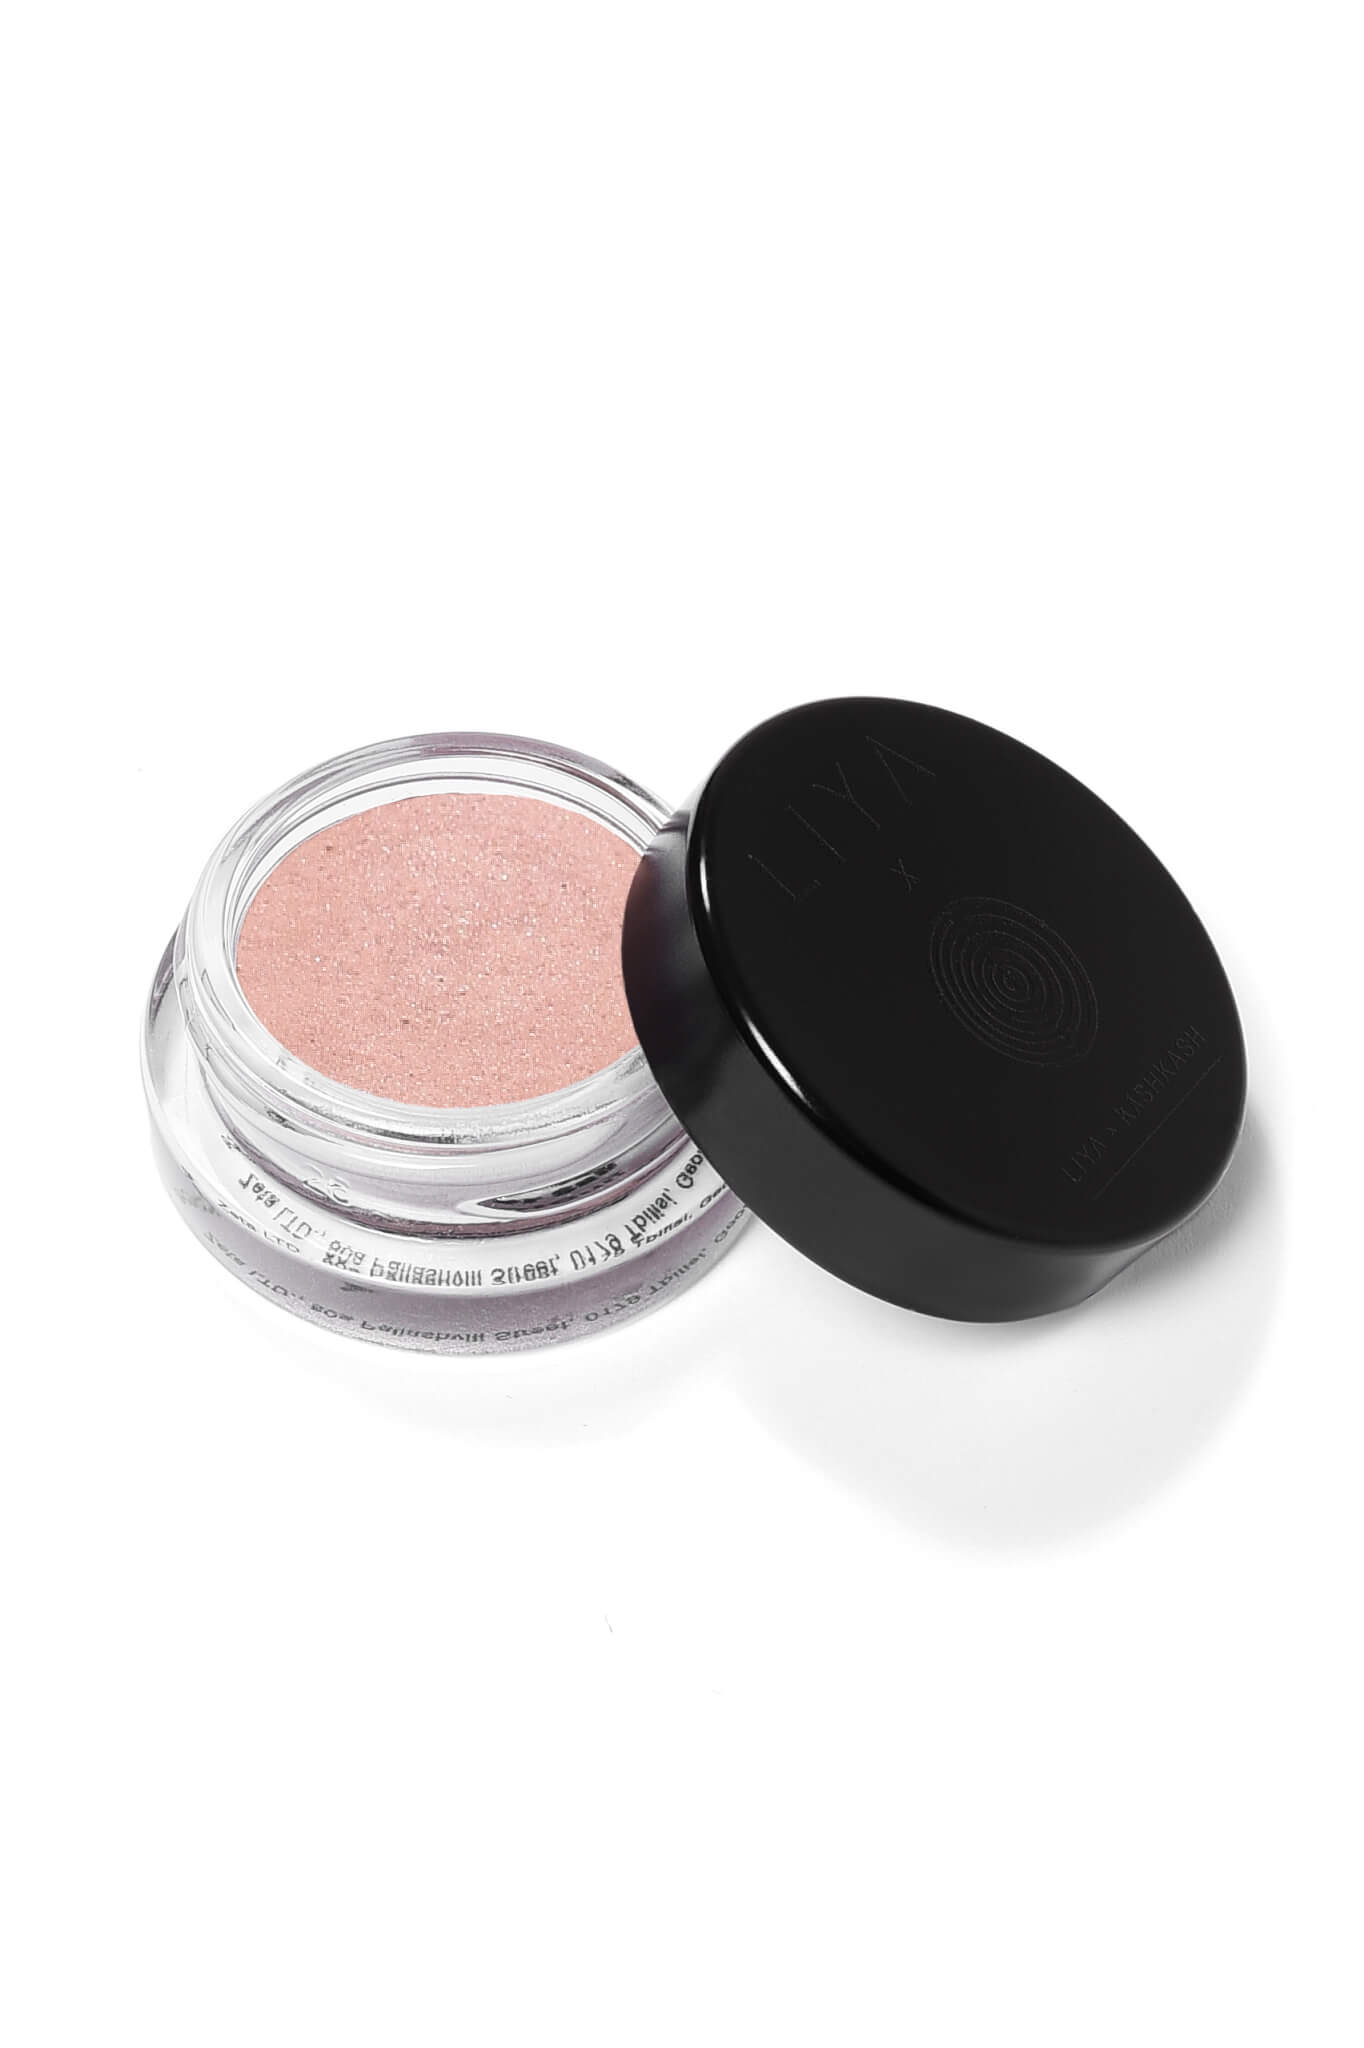 THE OTHER SUN Multi-Use Luminizer Rose Dusk